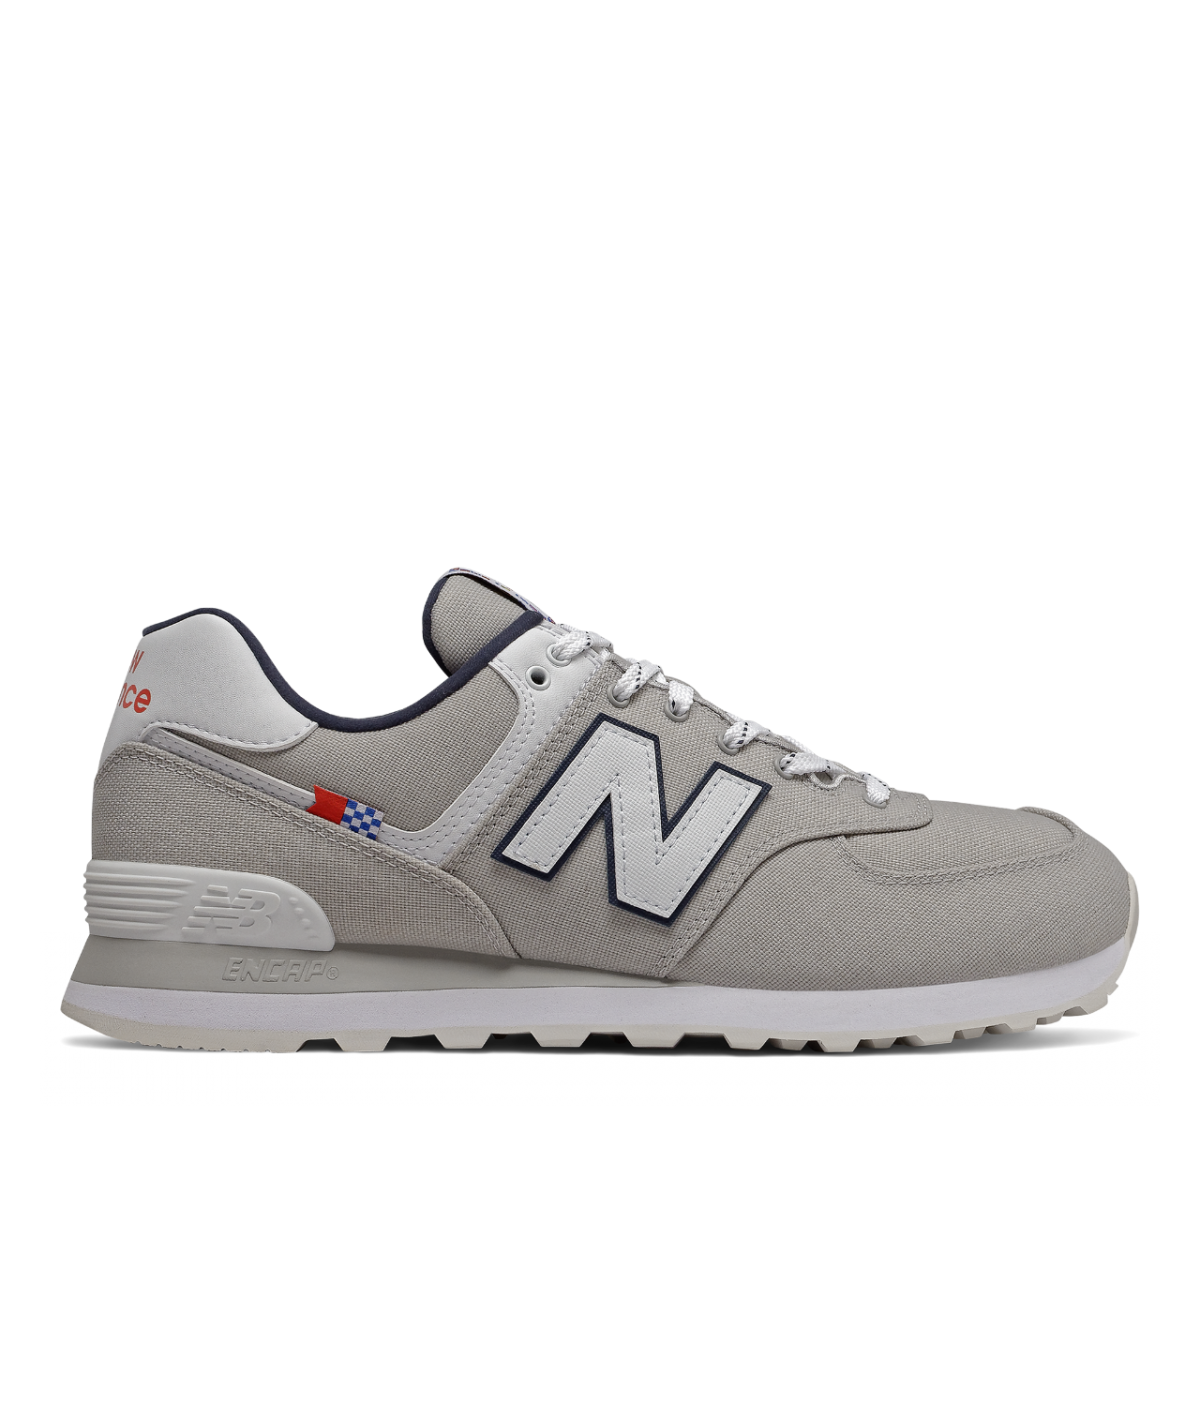 New Balance 574 SOO Grey Men's Sneaker